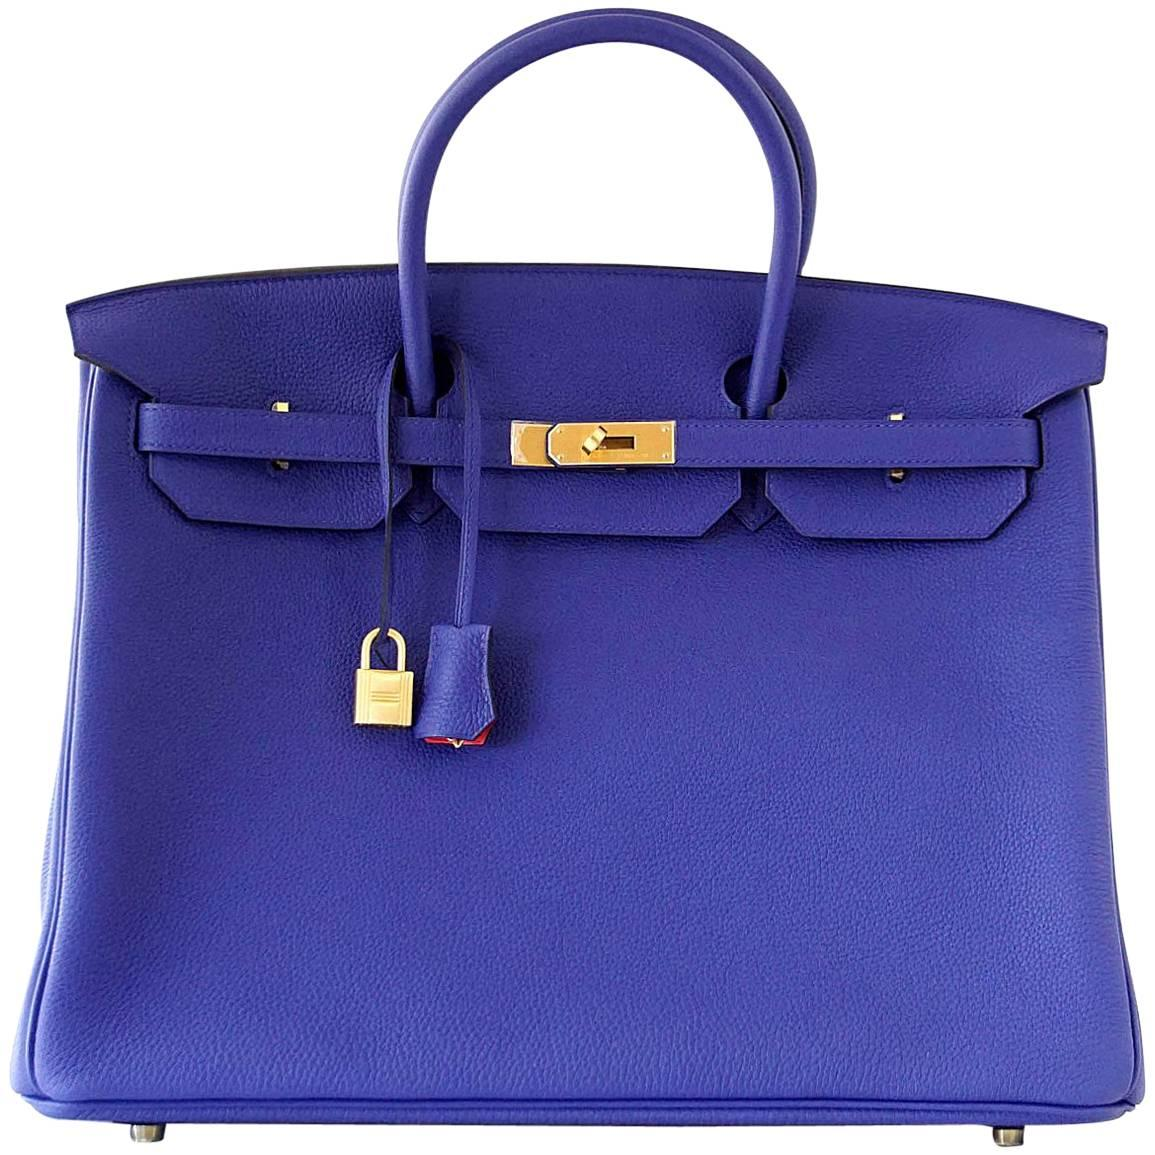 a8ebf59455 Hermes Birkin 35 Bag Blue Marine Coveted Rare Box Leather Palladium at  1stdibs